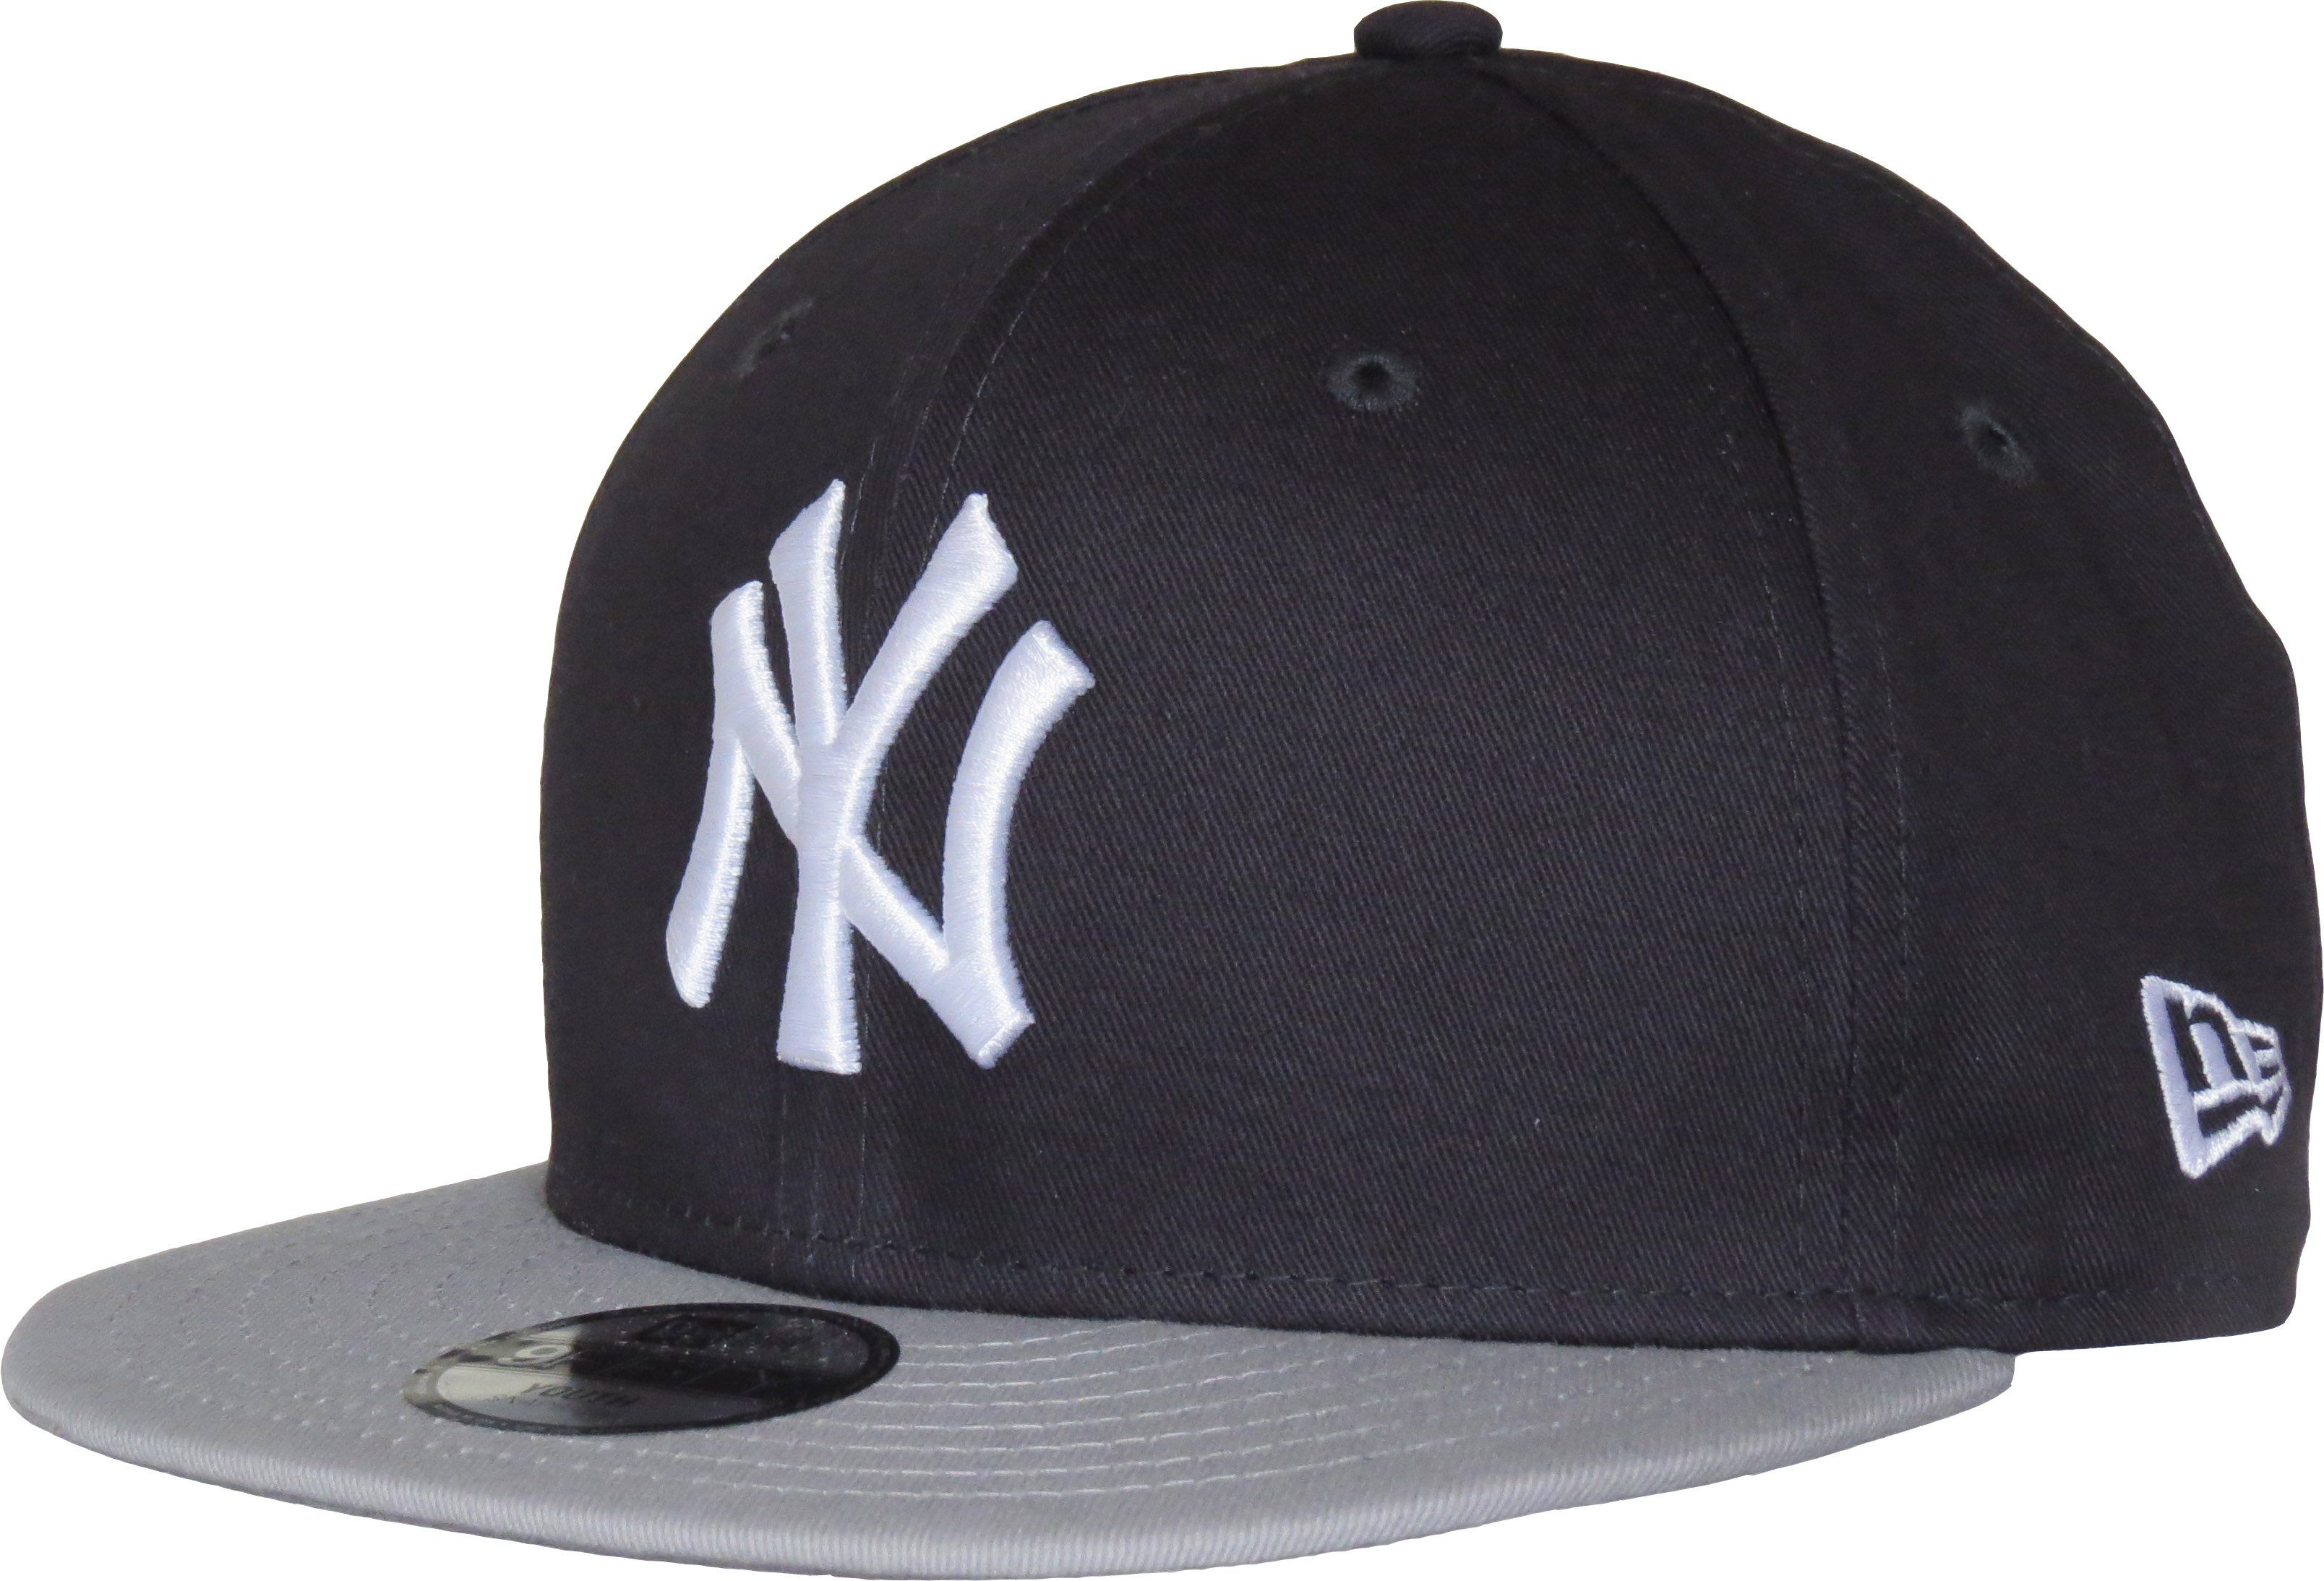 2b111d670ae76 New Era Kids 940 The League Adjustable Baseball Cap. Navy Blue with ...